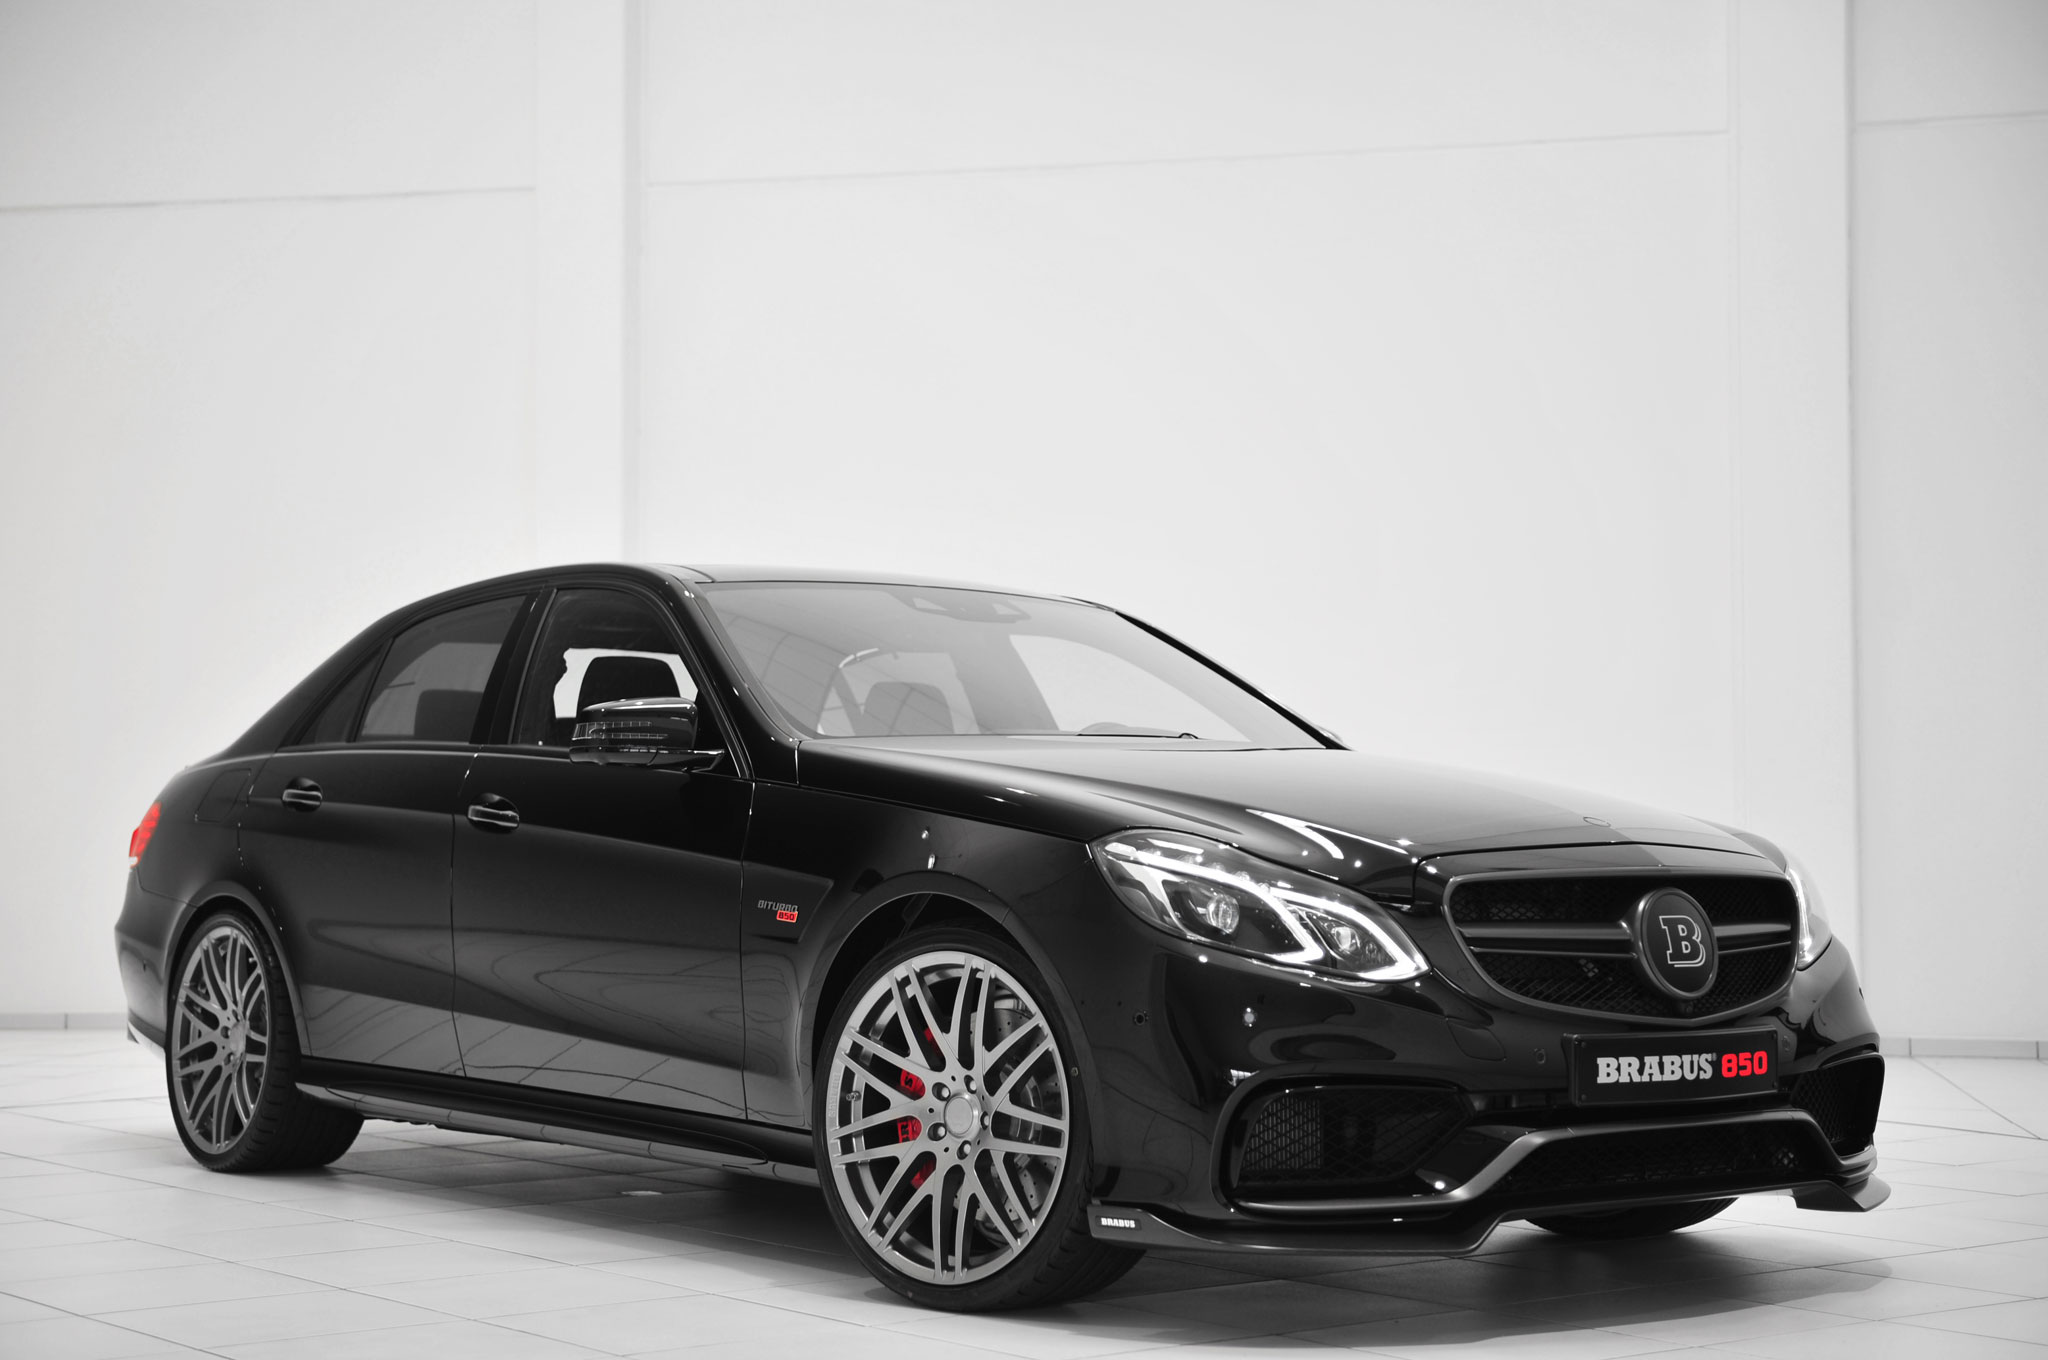 Brabus 850 60 Biturbo Front Side View In Black1